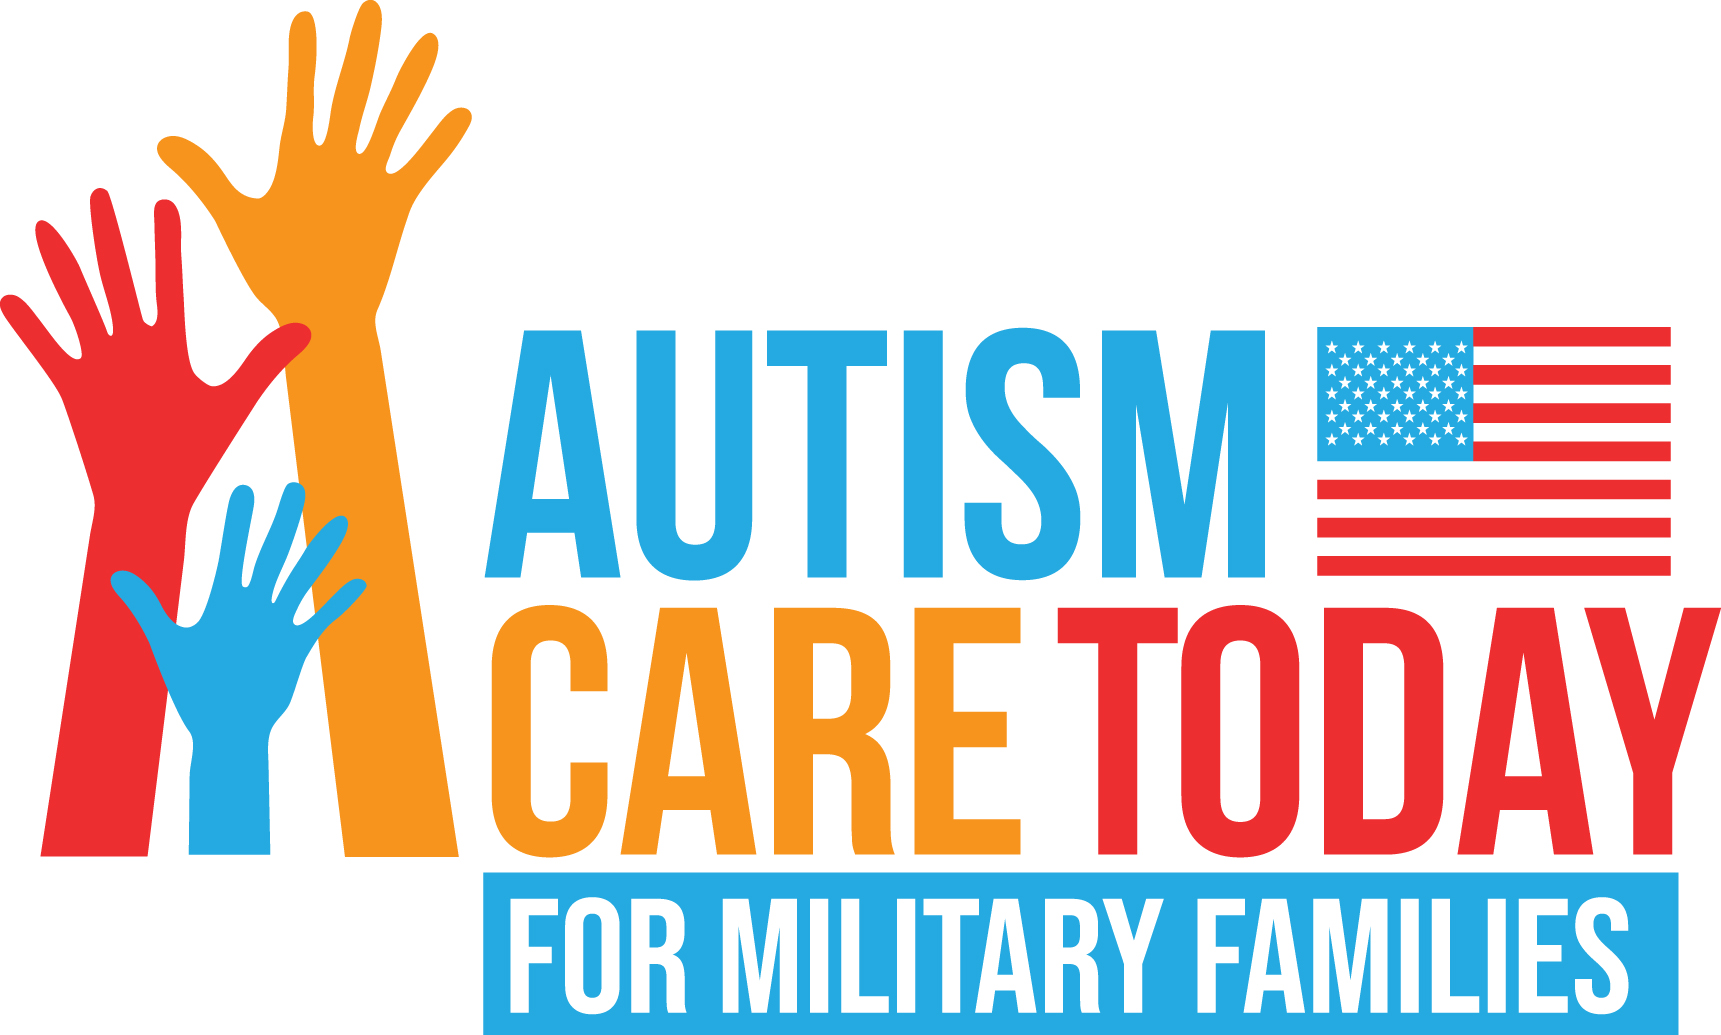 9th-annual-onehope-autism-care-today-for-military-families-5k10k-runwalk-and-family-festival-sponsor